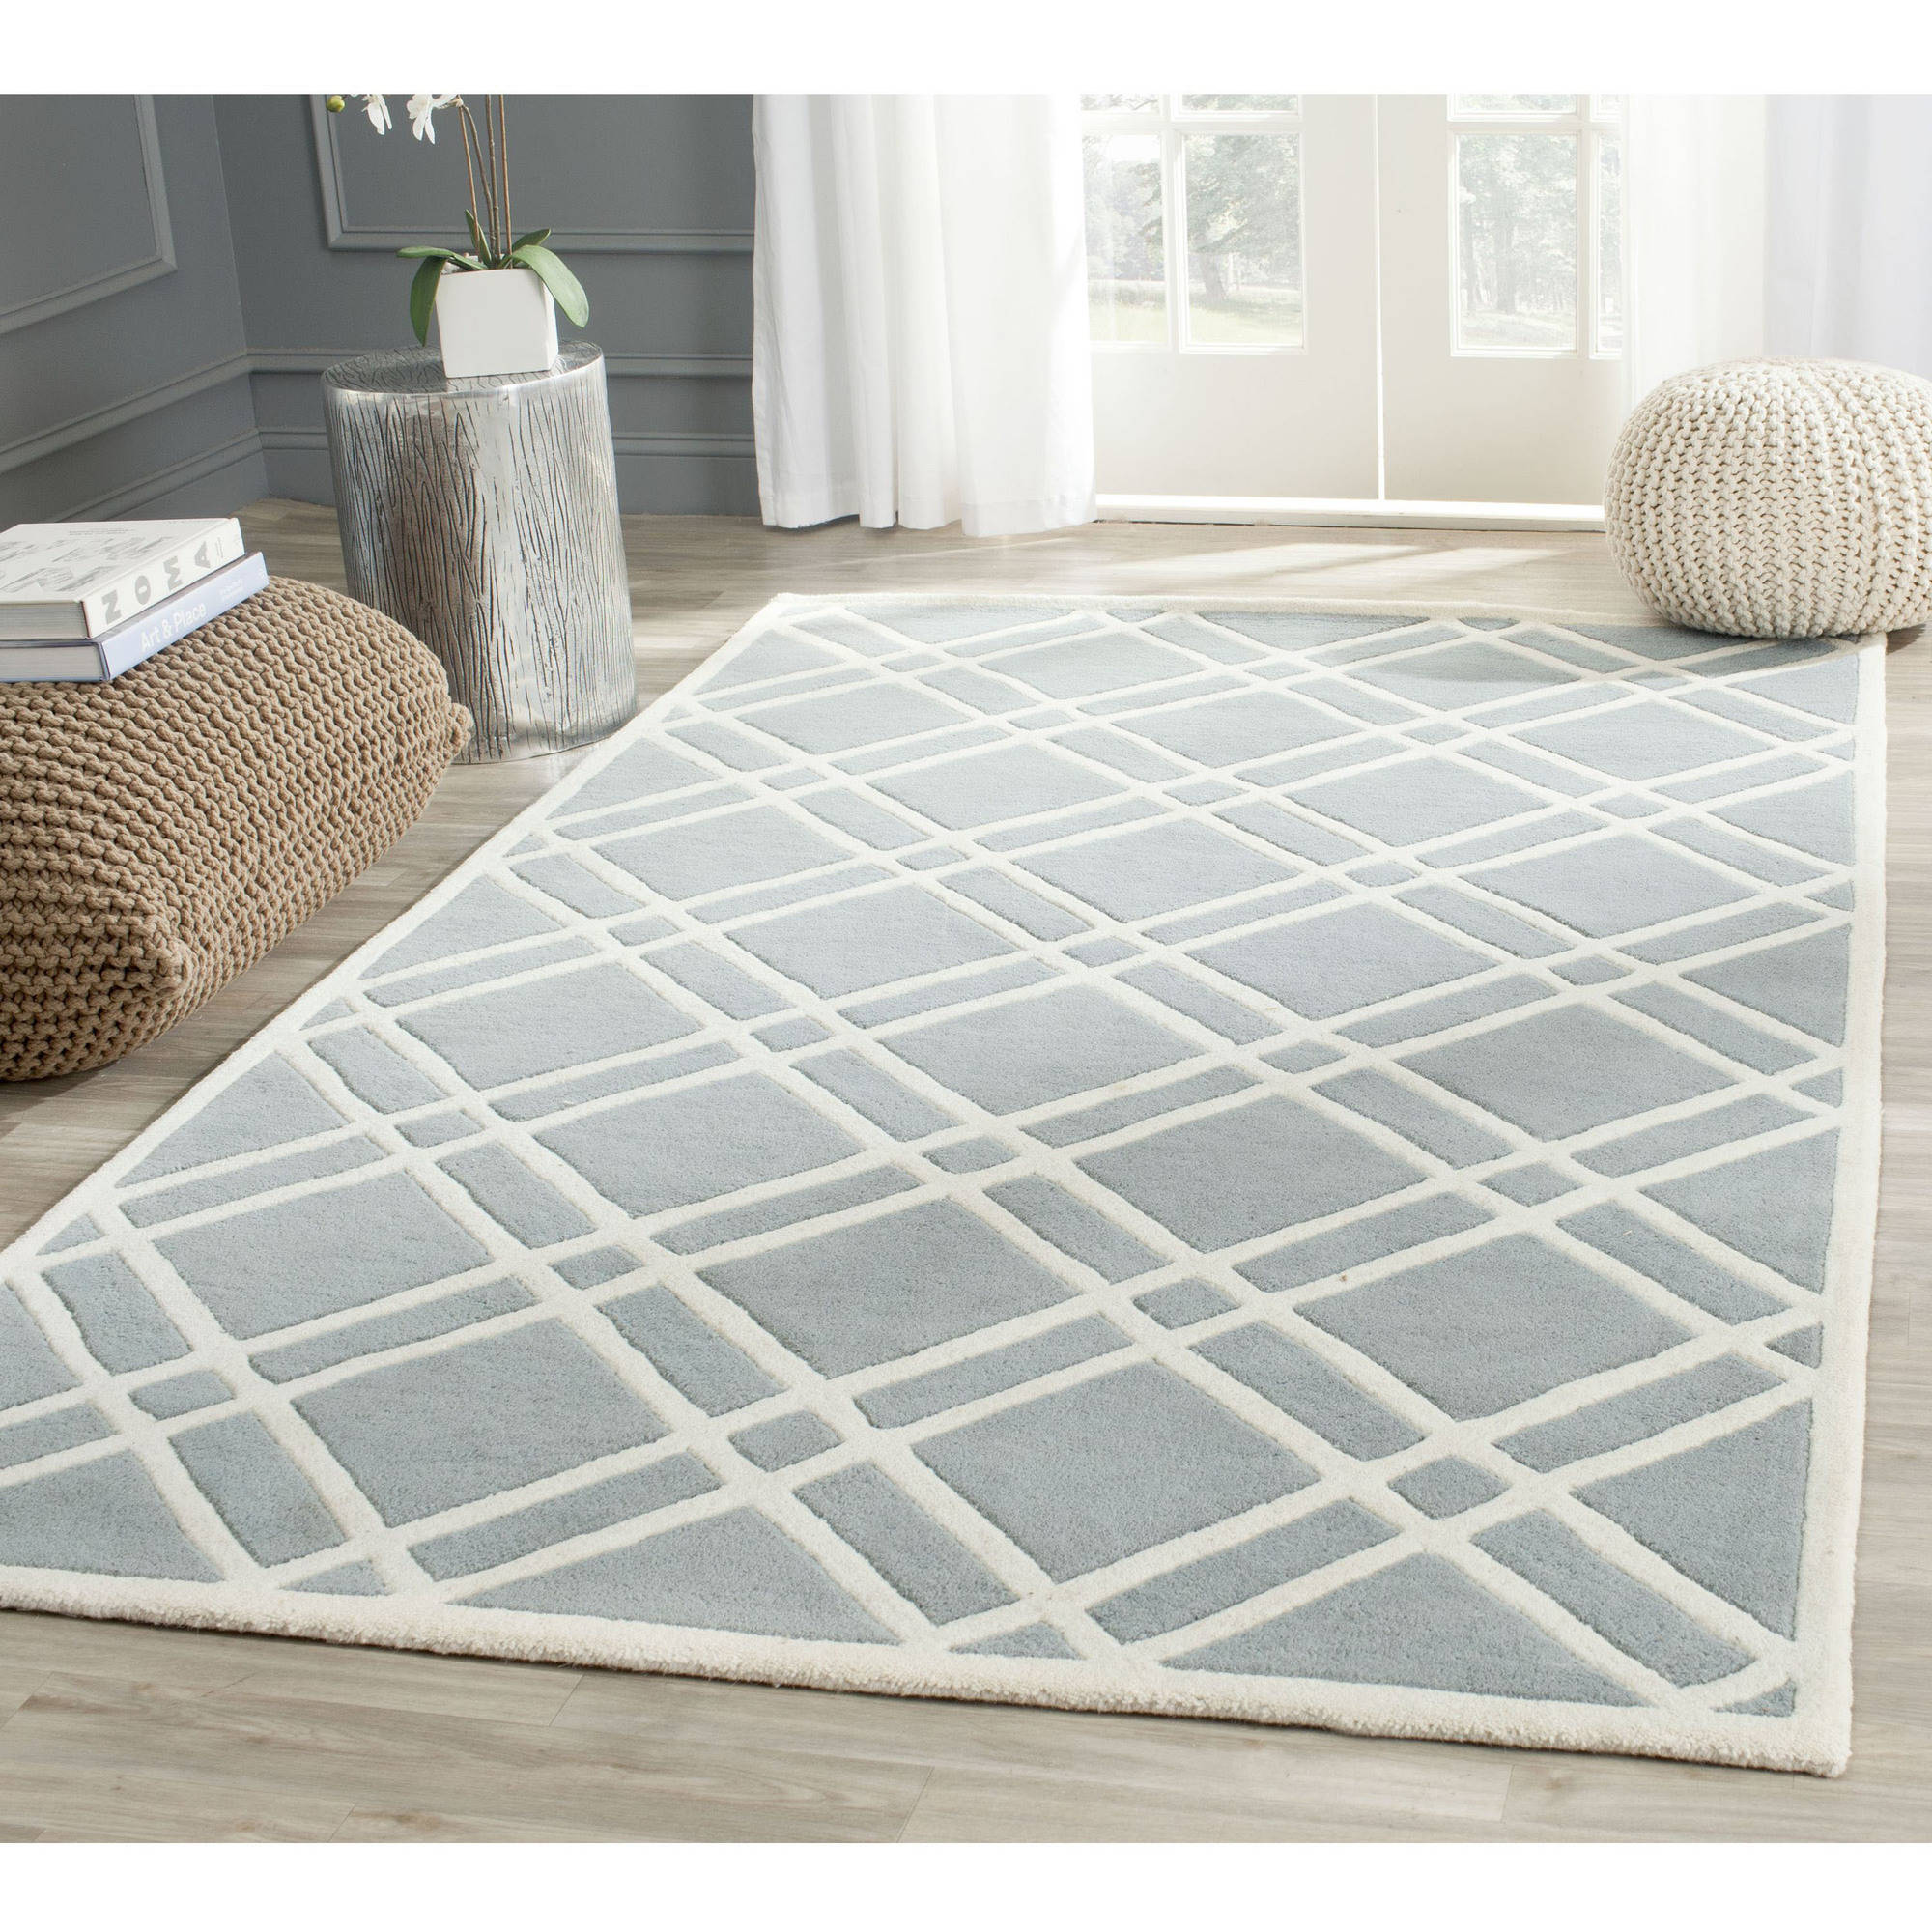 Safavieh Chatham Gary Hand Tufted Wool Area Rug